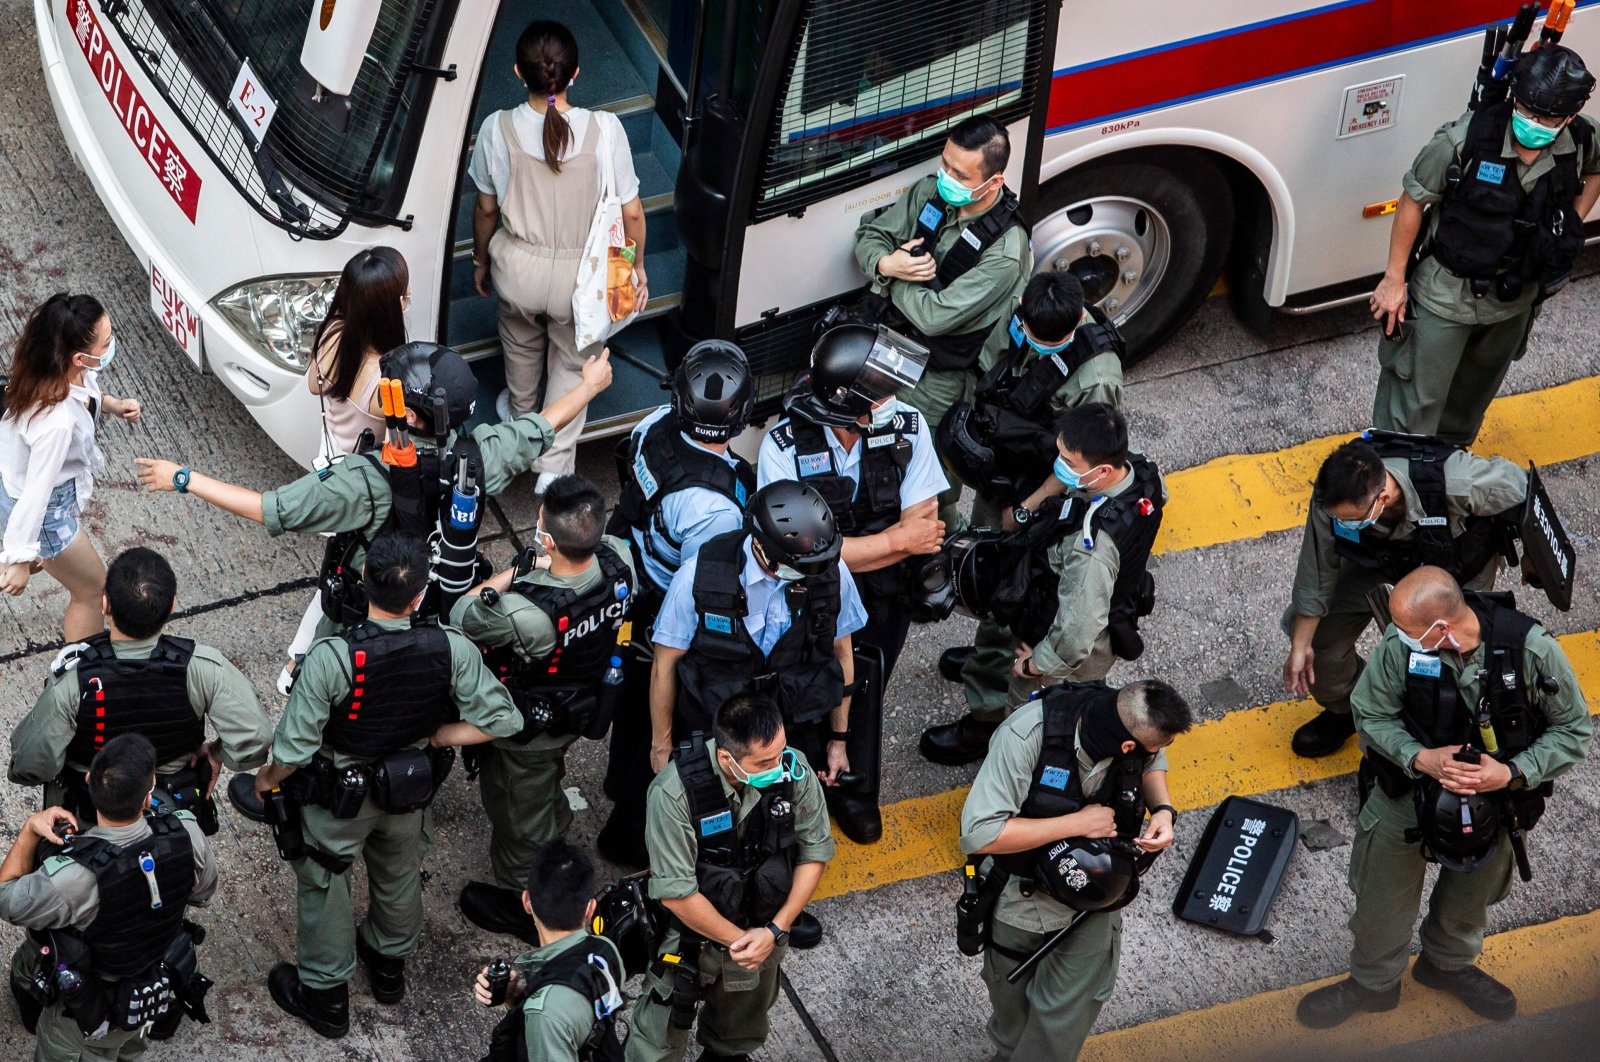 Women (L) are arrested and led onto a bus by police during a protest against China's planned national security law in Hong Kong on June 28, 2020. (AFP Photo)